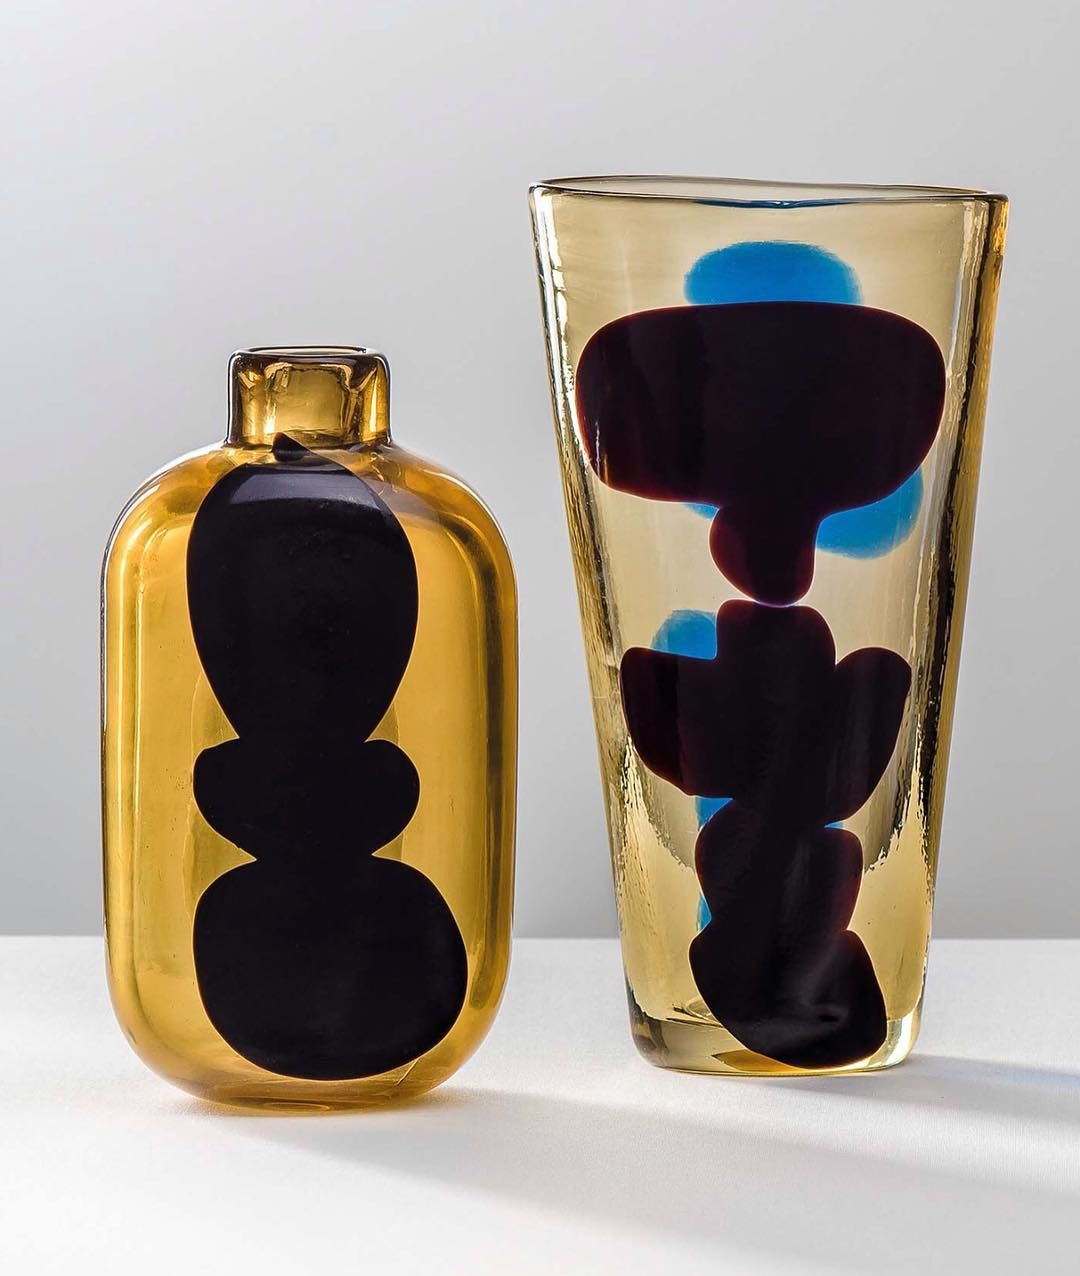 Fulvio Bianconi A Macchie Bottle And Vase 1950 Material Amber Glass With Colored A Macchie Inclusions Manufactured By Venini Ital Glass Vase Murano Glass